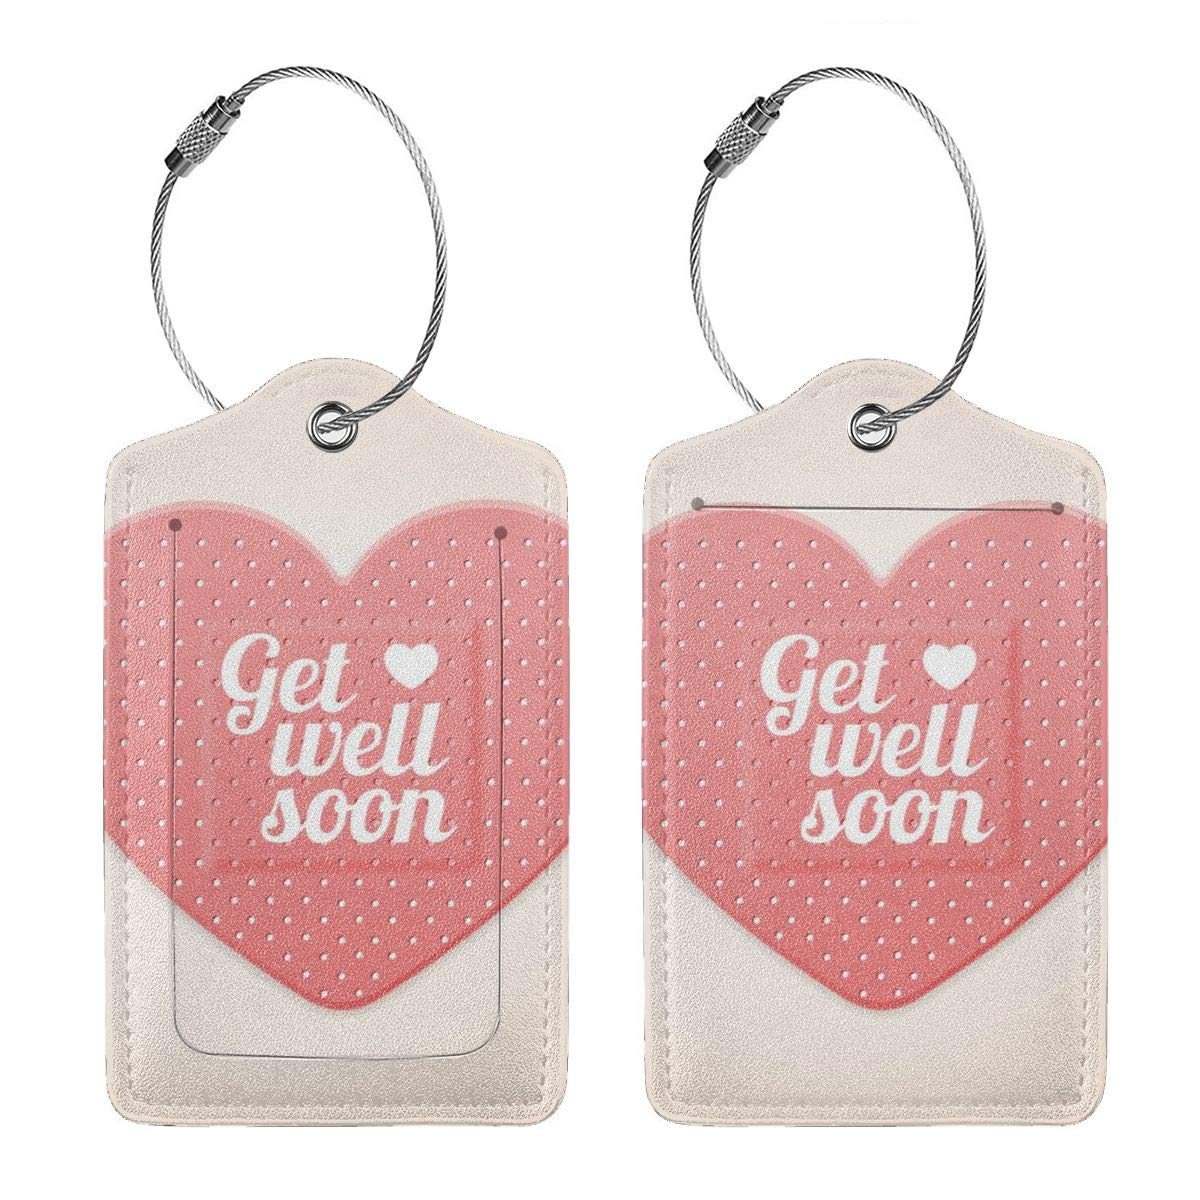 Lucaeat Get Well Soon Pattern Luggage Tag PU Leather Bag Tag Travel Suitcases ID